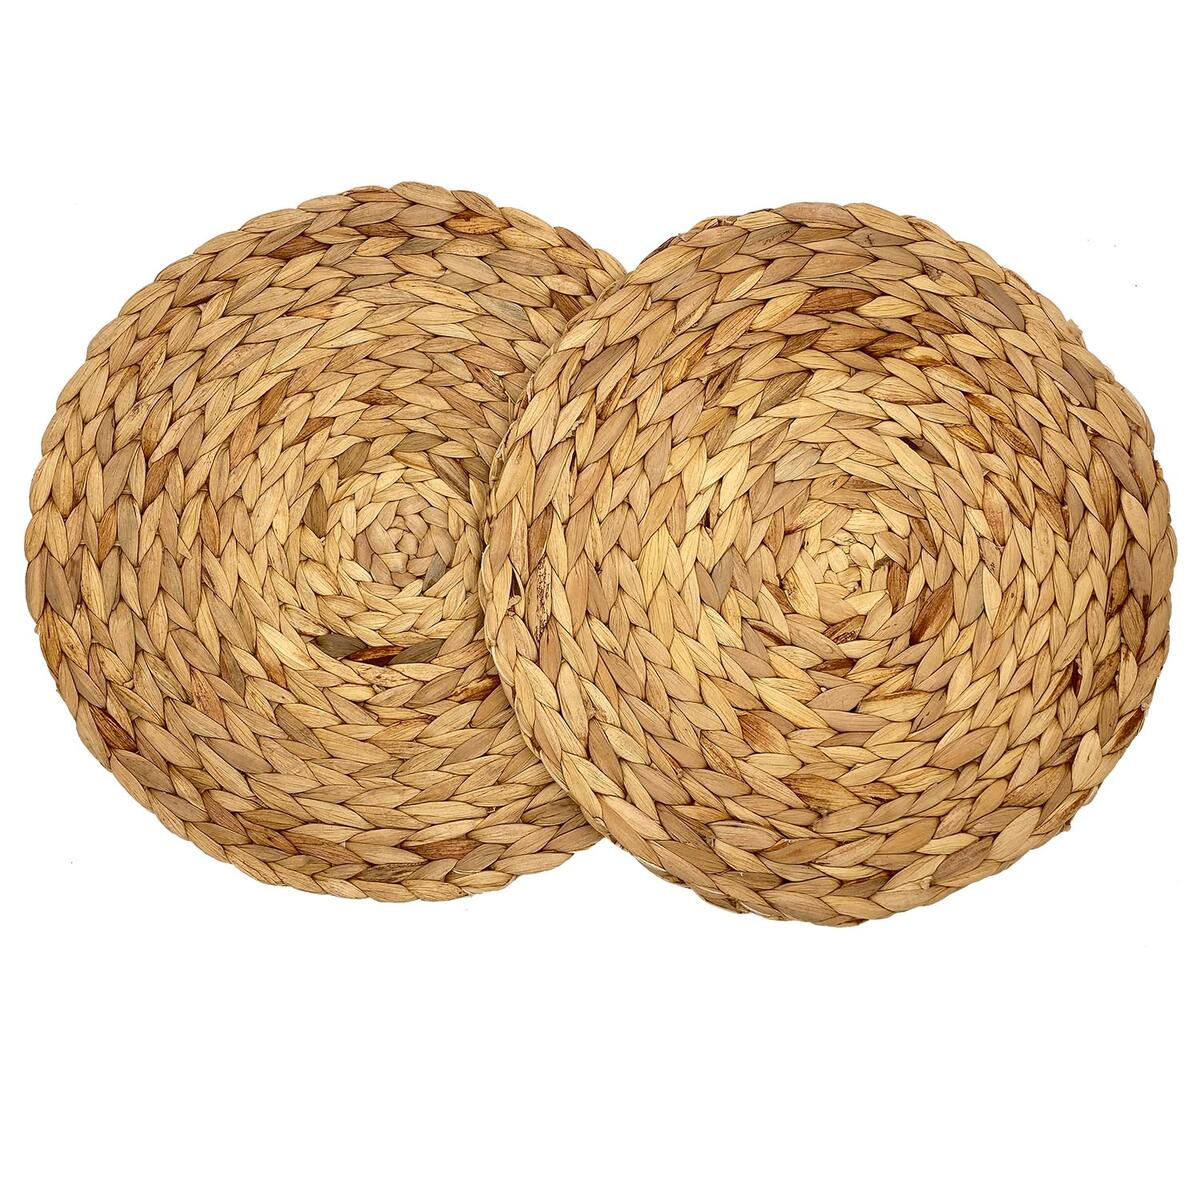 Royor Rattan Placemats, Round Placemats for Dining Table, Non-Slip Weave Placemat